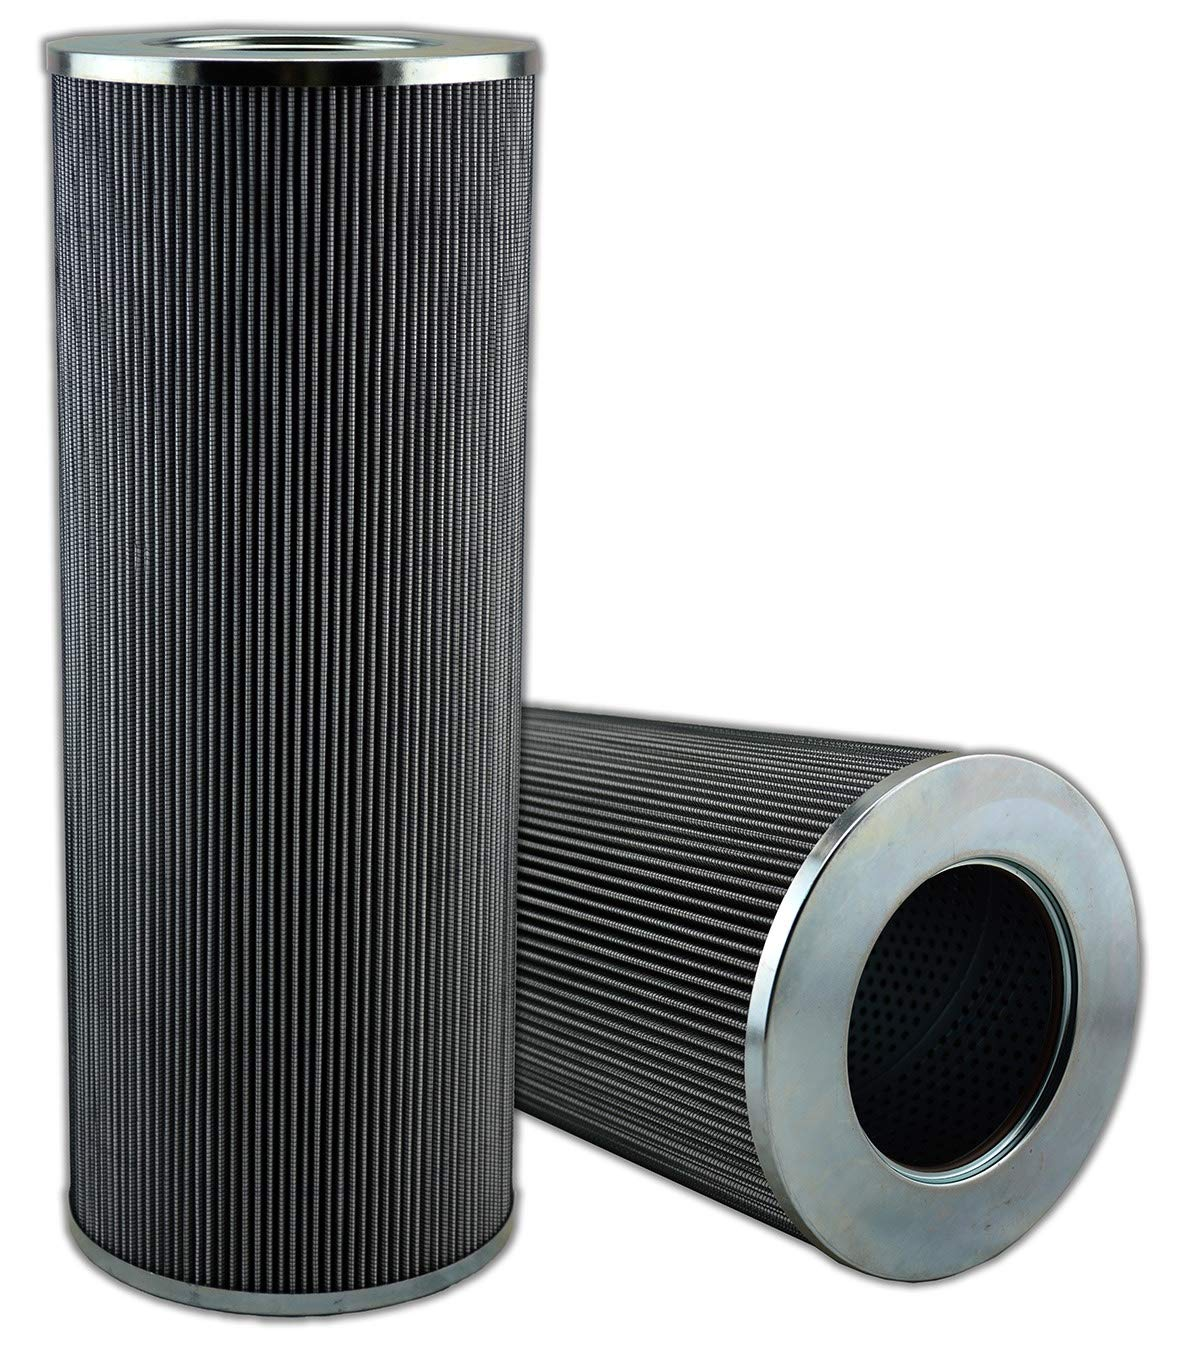 Main Filter Inc. Replacement for XR1000G06 Max Max 66% OFF 56% OFF FILTREC